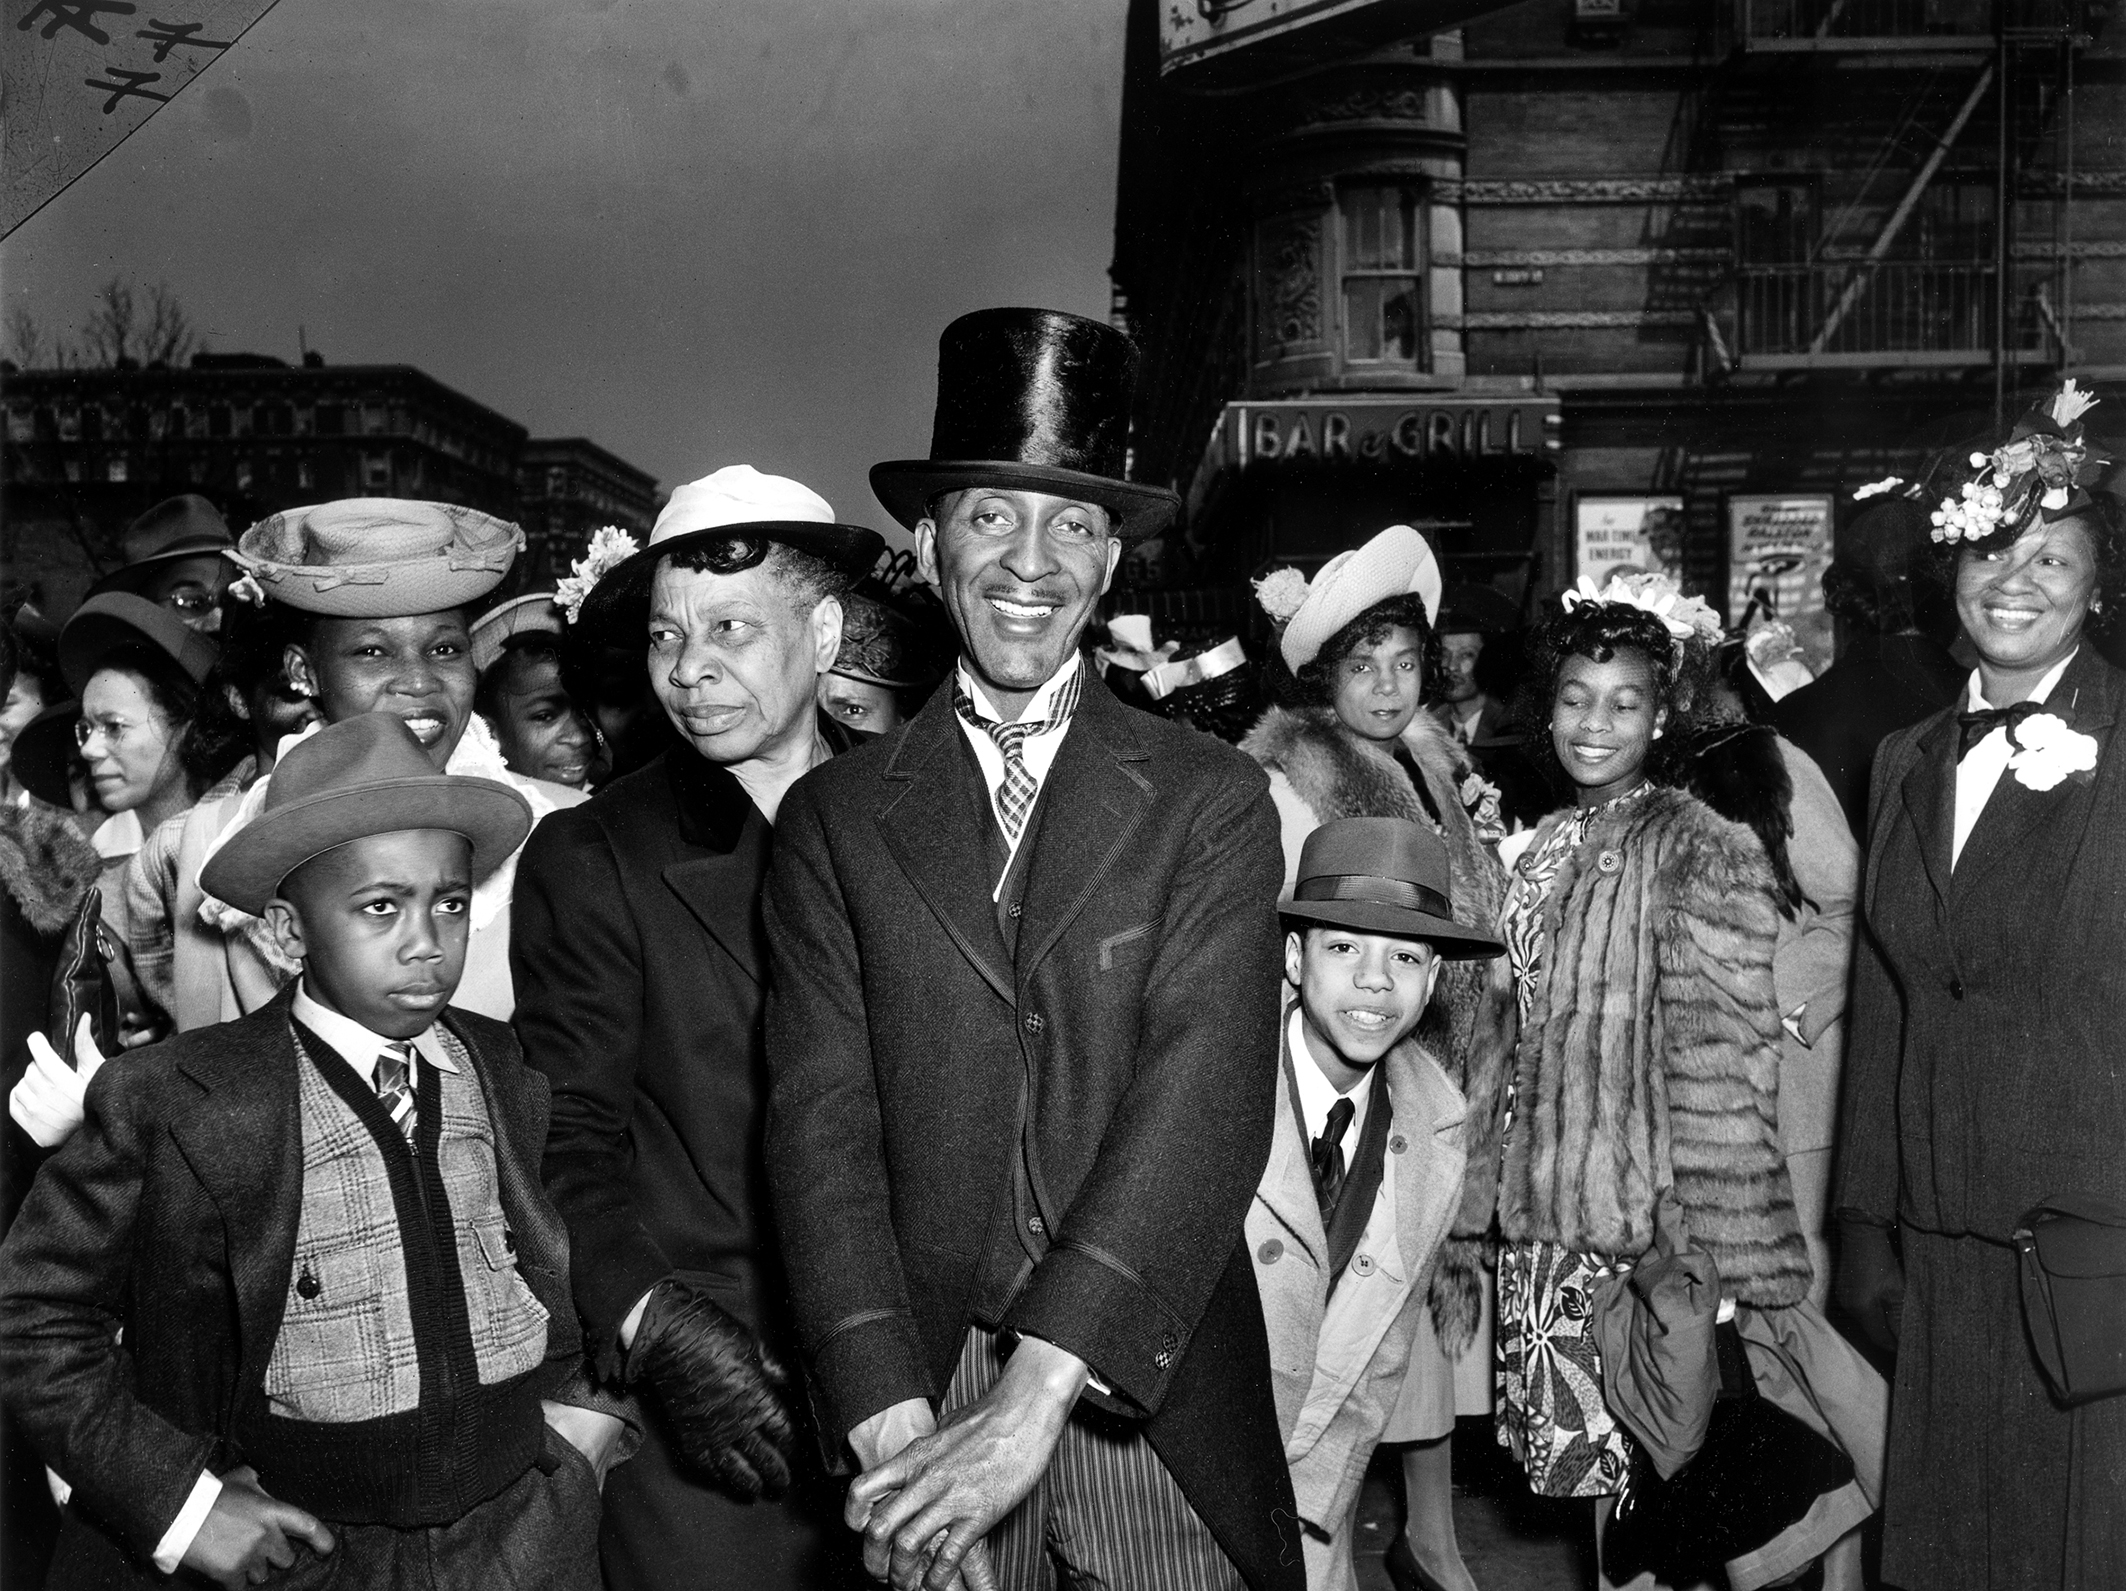 Penccil Weegee The Situation Photographer